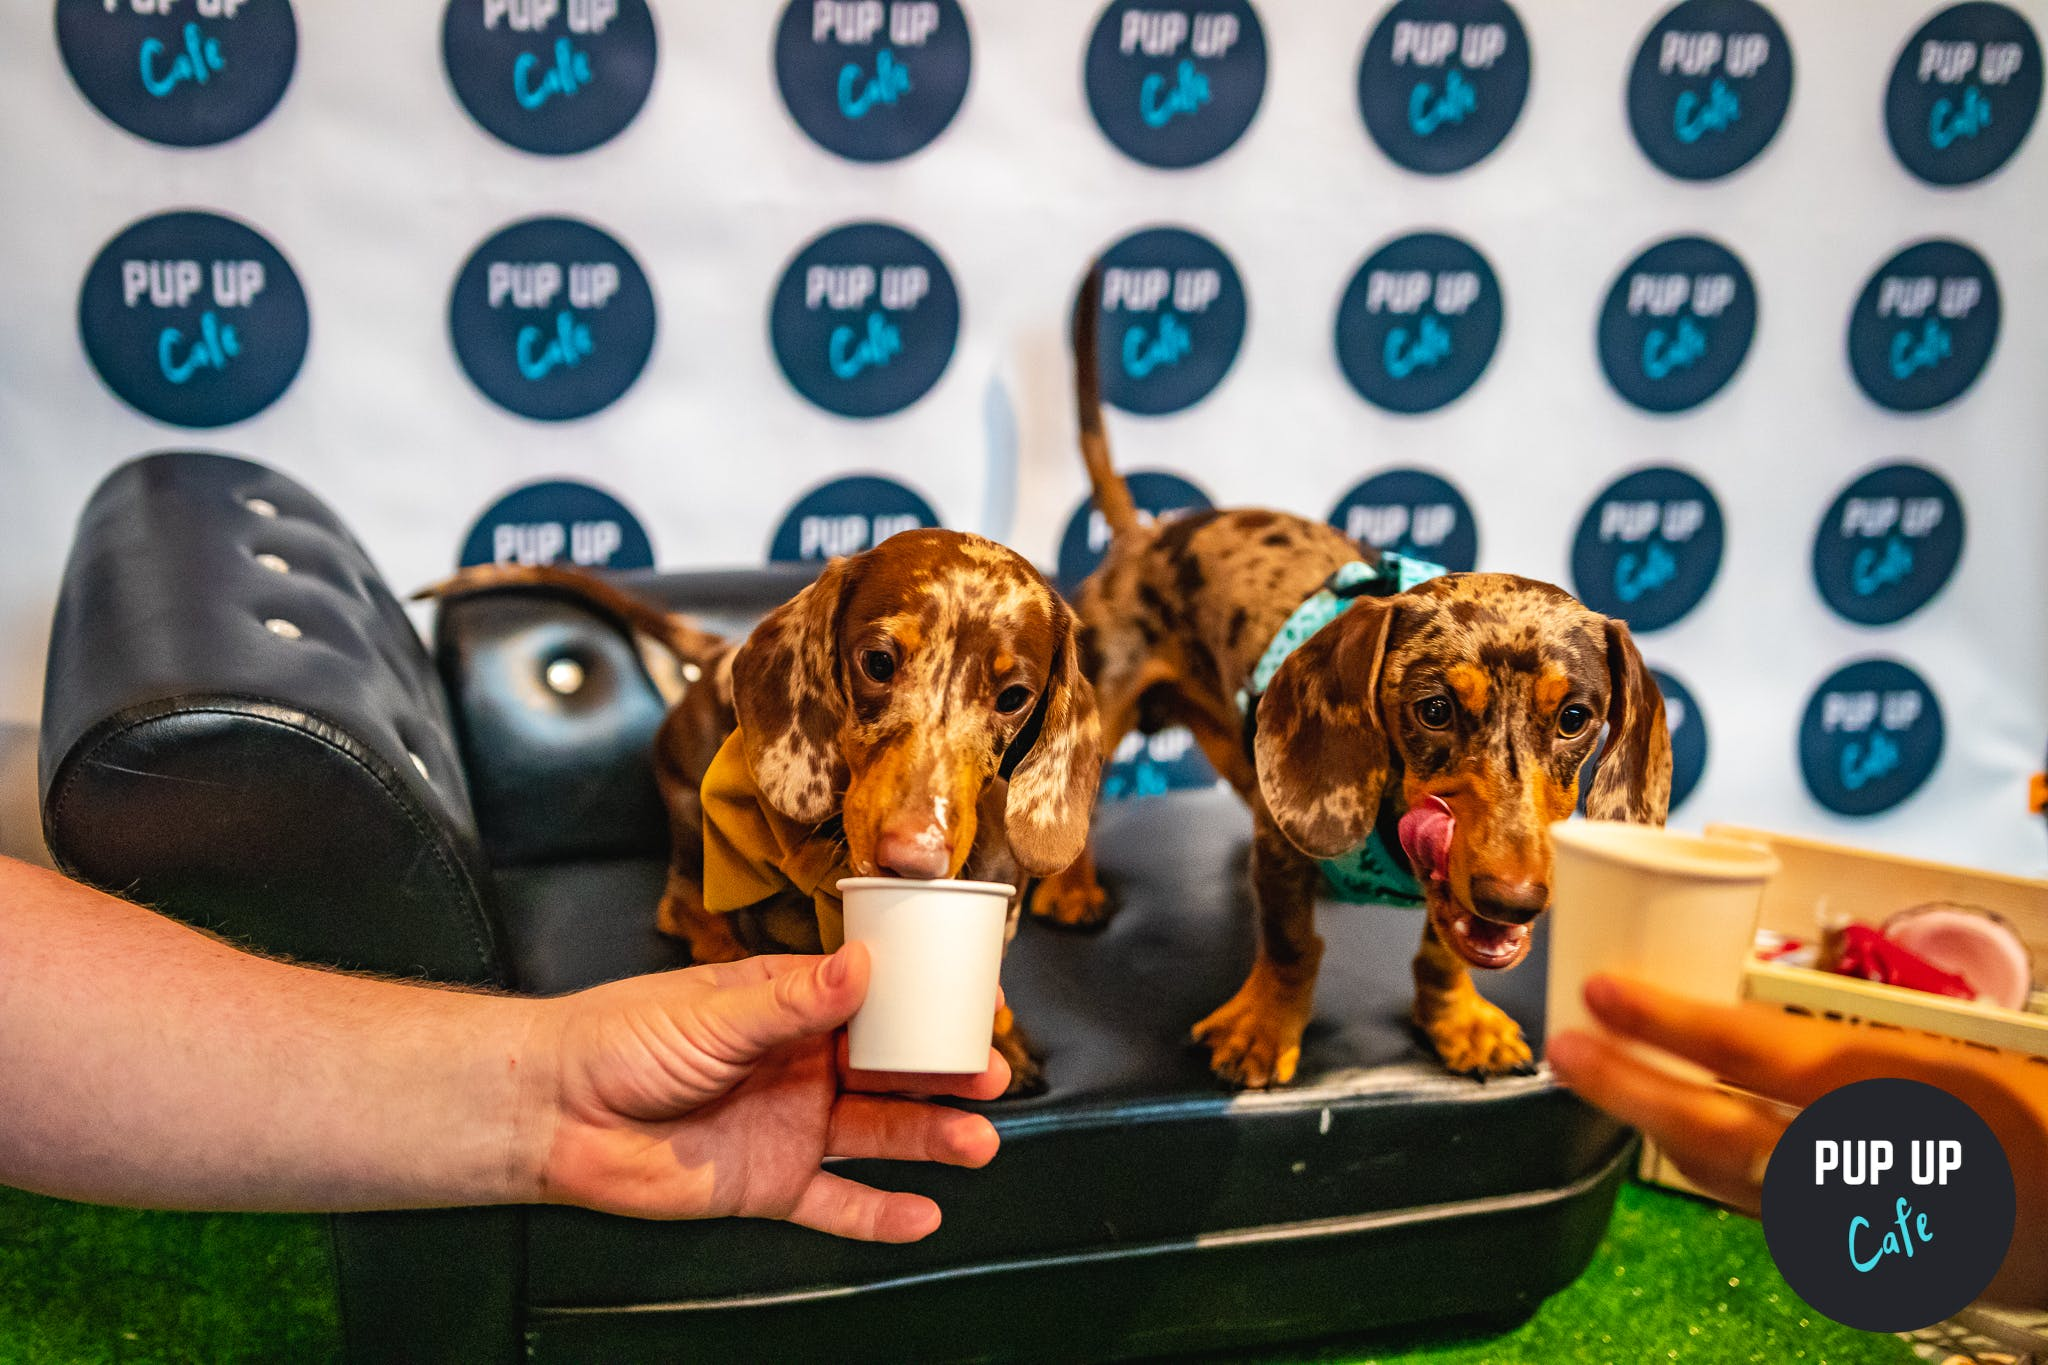 Glasgow bar to host 'pup-up' cafe for Dachshunds